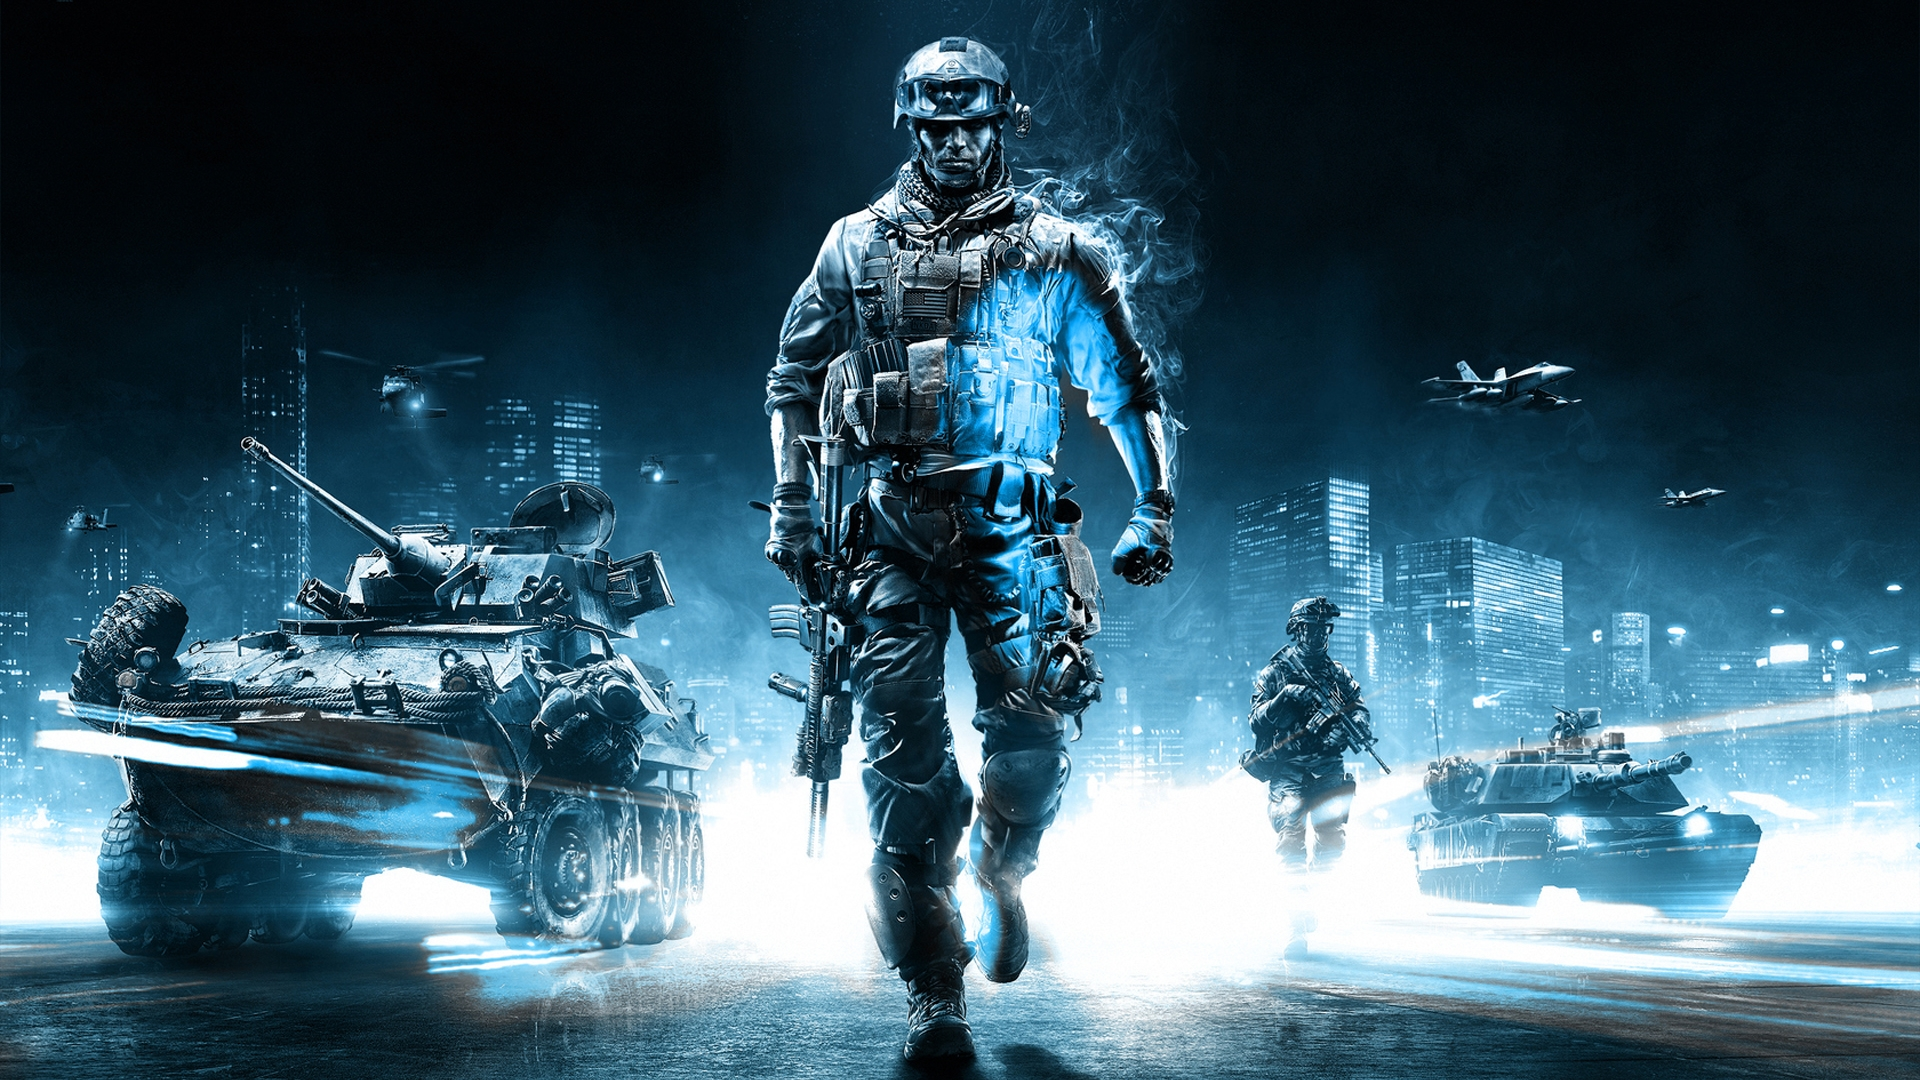 emiliano s top gaming wallpapers gaming respawn